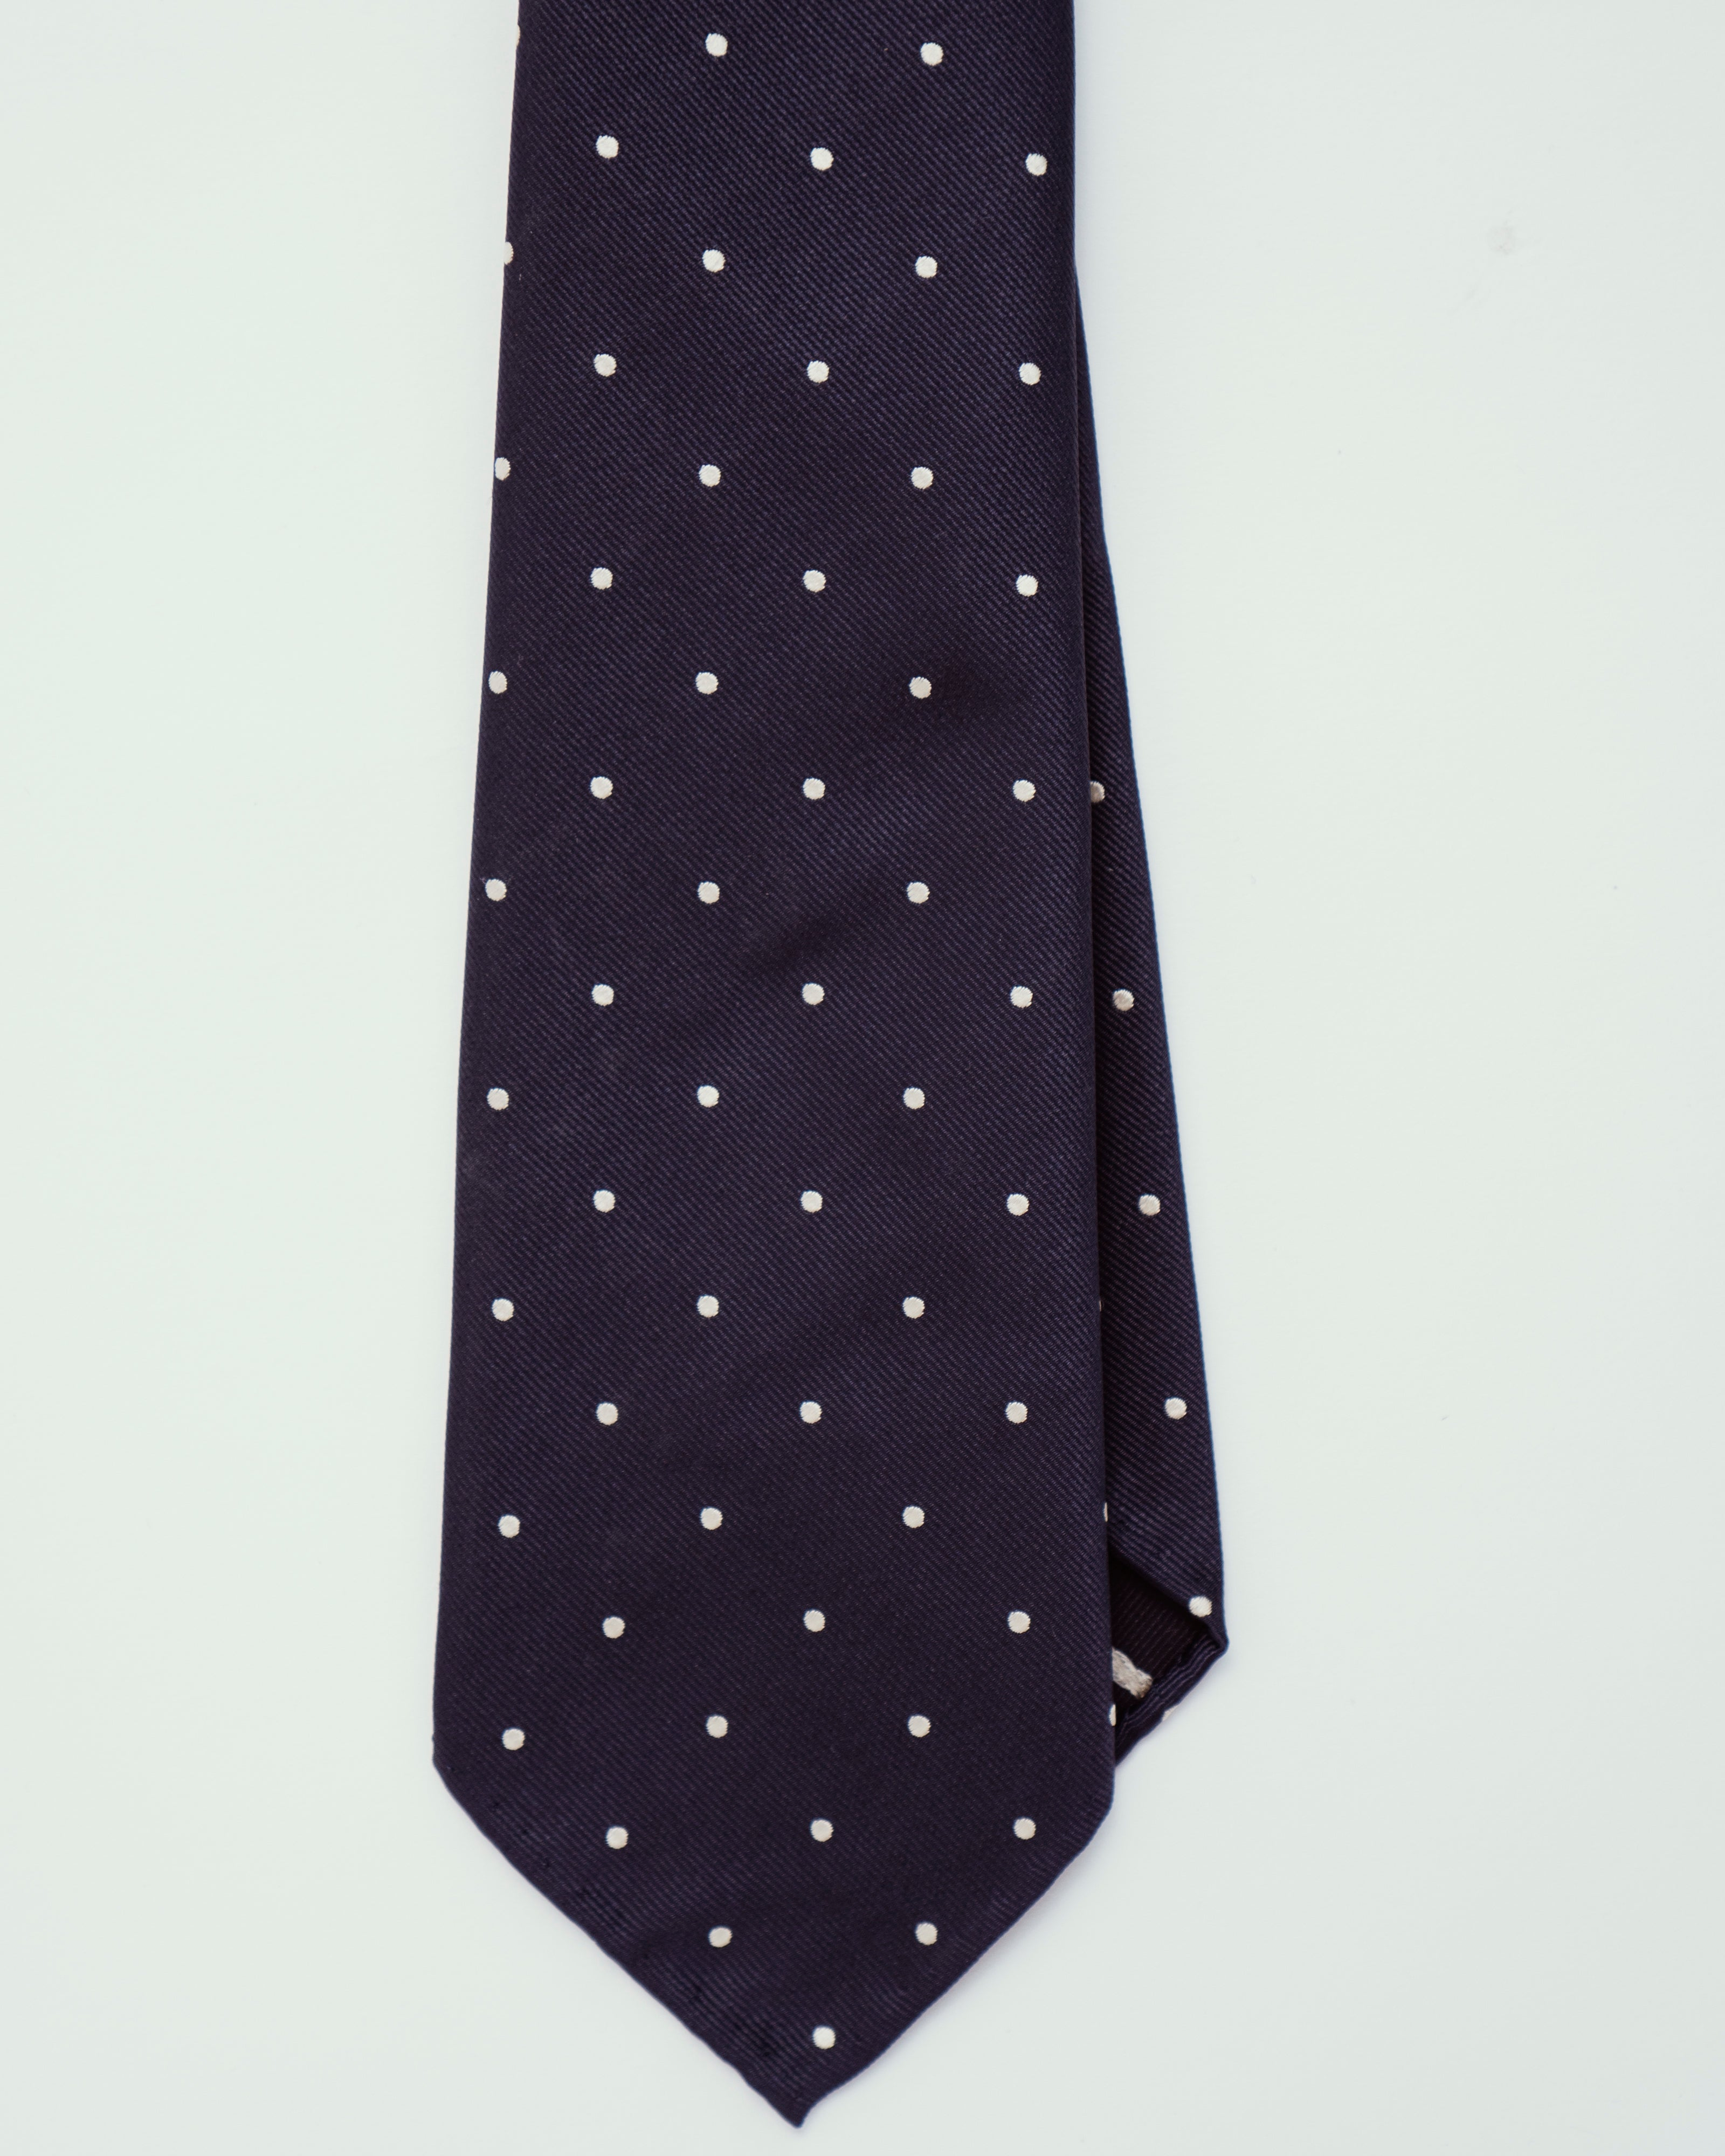 Navy w/ Small Polka Dots | 100% Silk, Tie Your Tie - The Signet Store